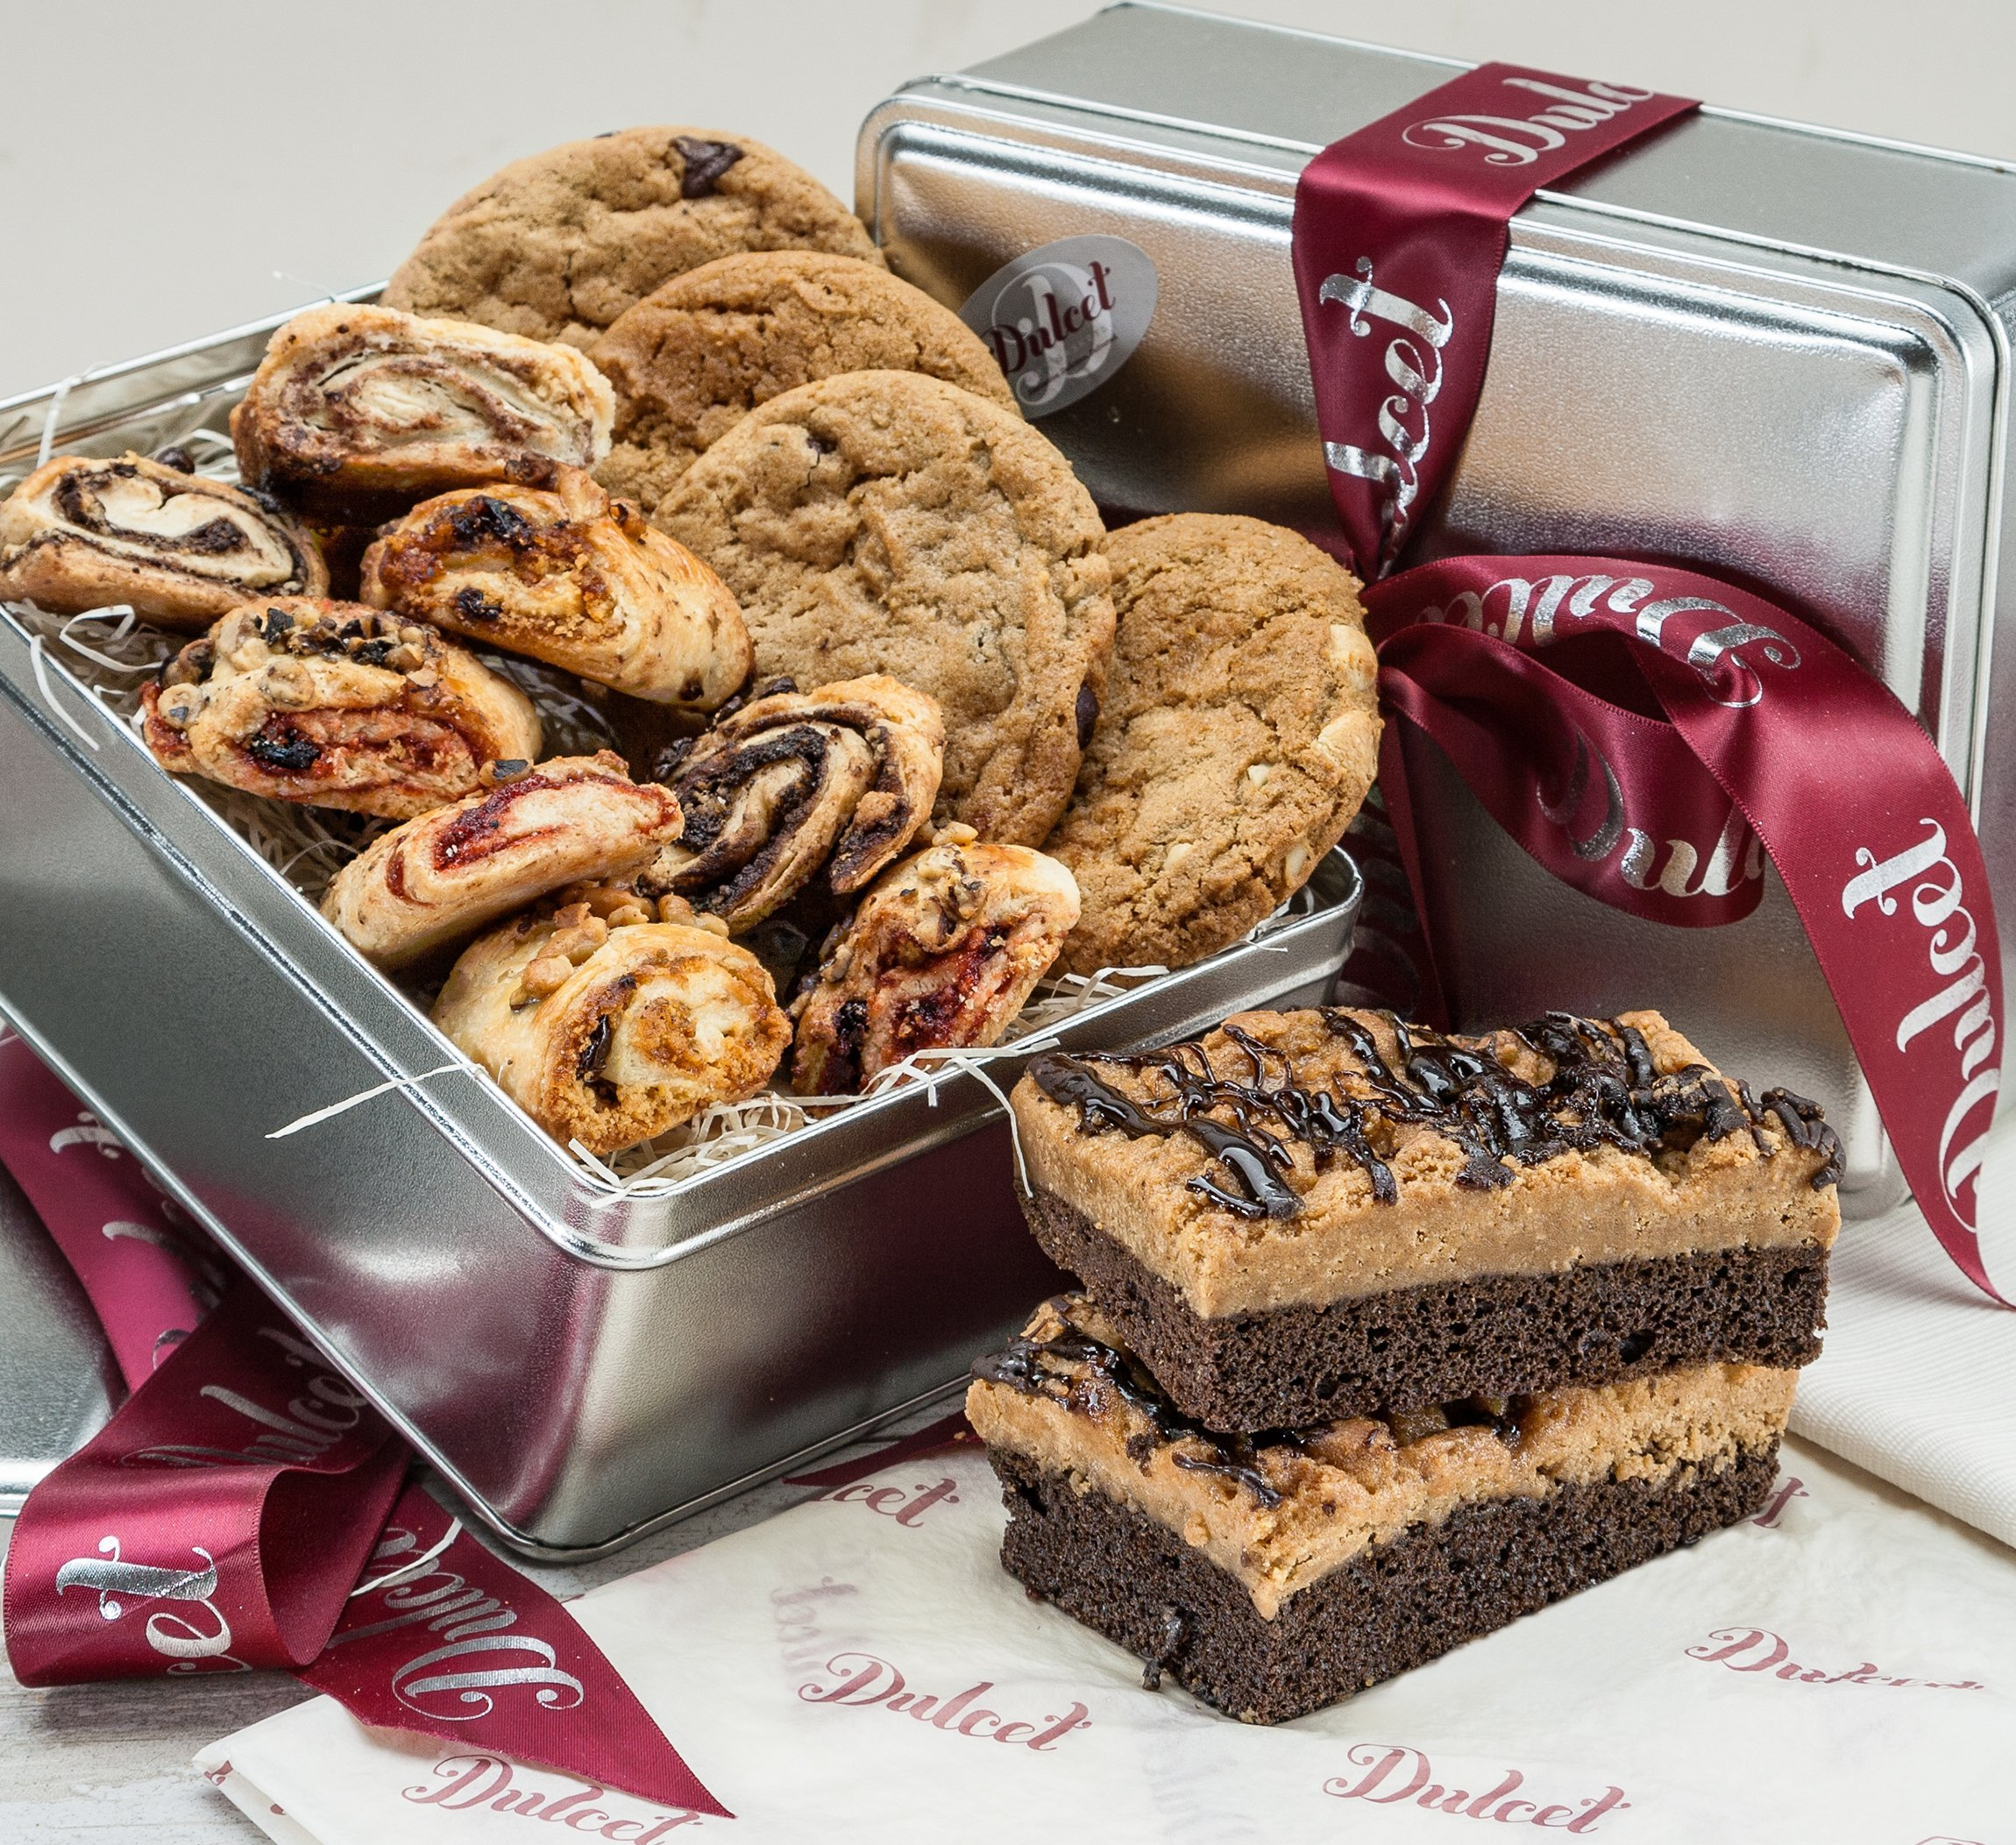 Old Fashioned Gourmet Bakery Gift Mother Day-Includes: Chocolate Chip Cookie, Macadamia Nut Cookie, Peanut Butter Cookie, Oatmeal Raisin Cookie, Rugelach, Chocolate Crumb cake. Great Gift Basket!